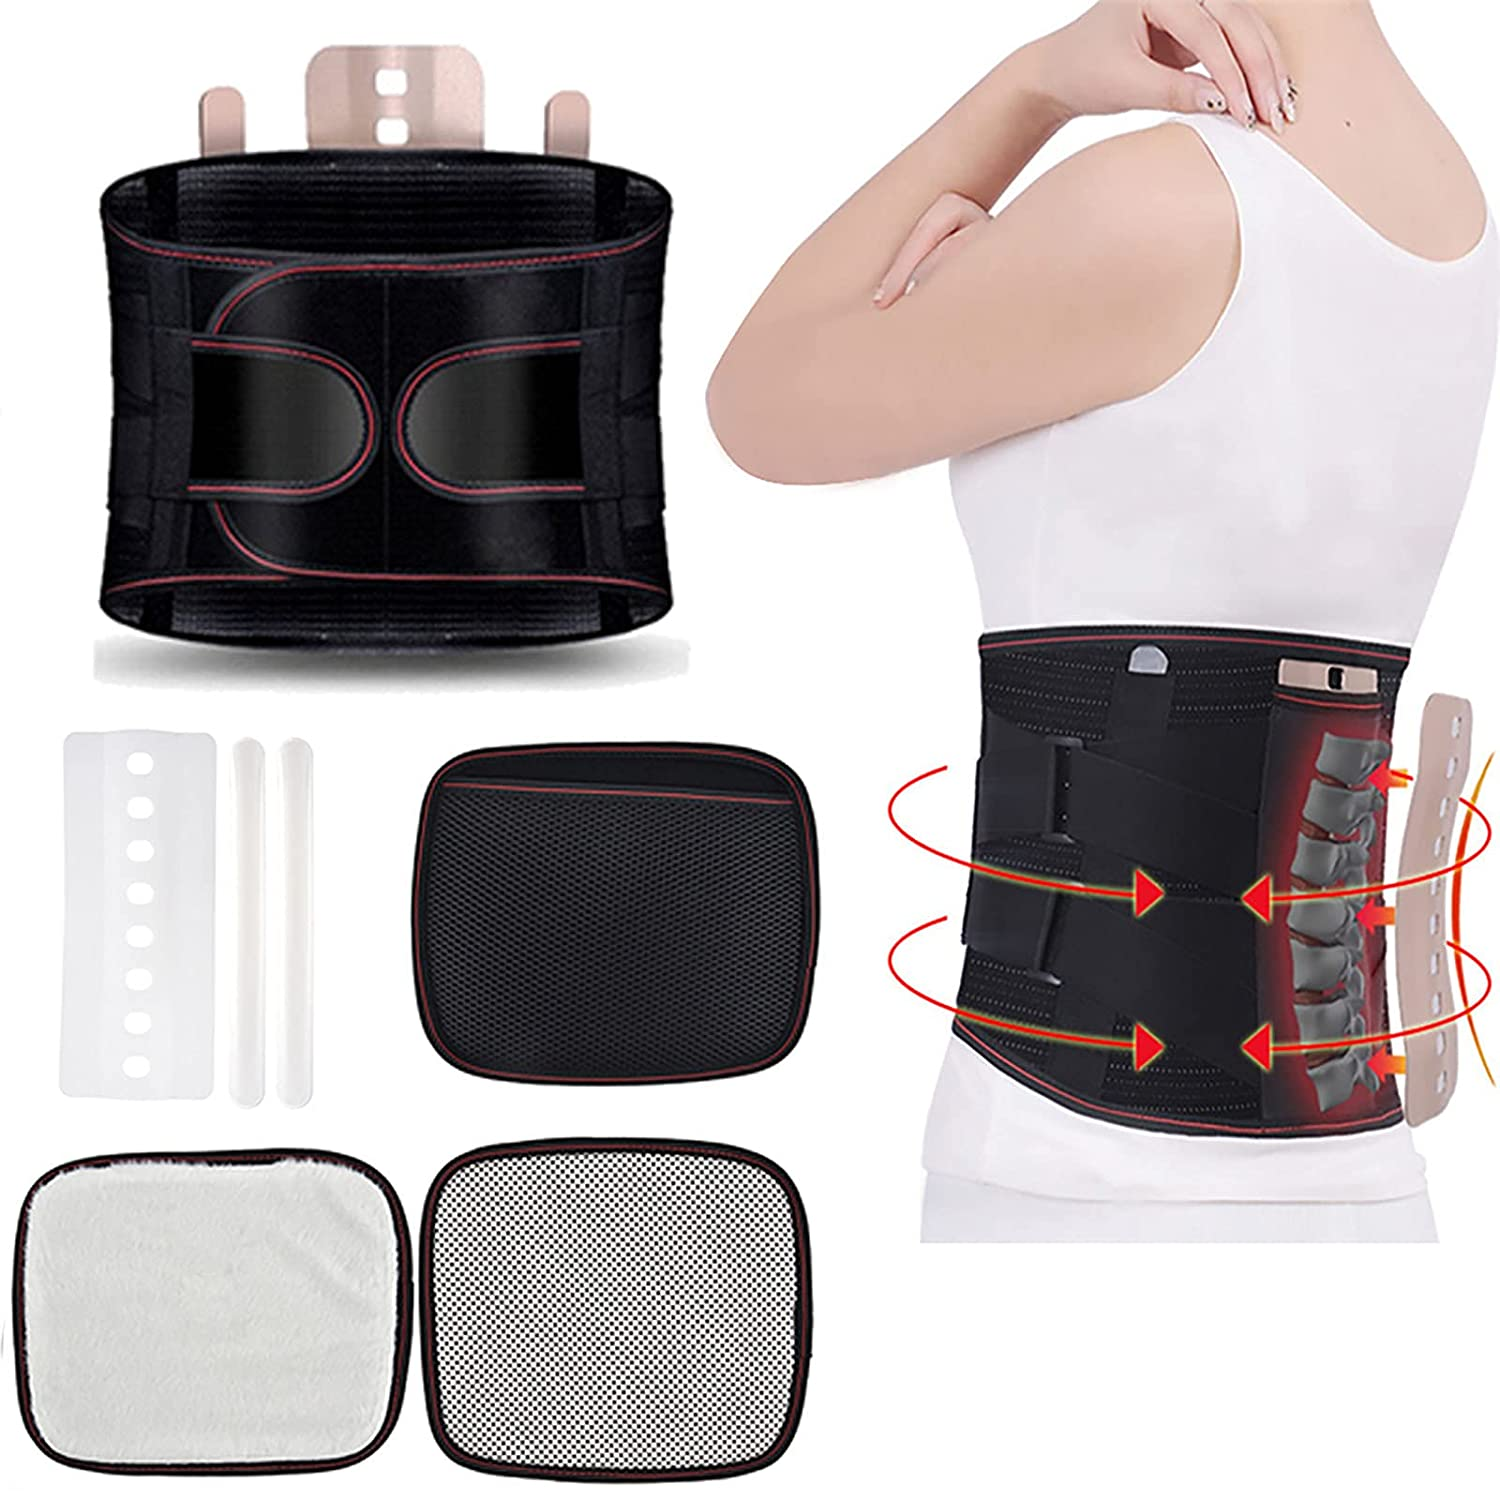 Orthopedic Lumbar Support Belt with Steel Plates and Heat Therapy,Back Support Brace Belt Lumbar Lower Back Waist Pain Relief Strap,for Men/Women Herniated Disc, Scoliosis (Black, S)